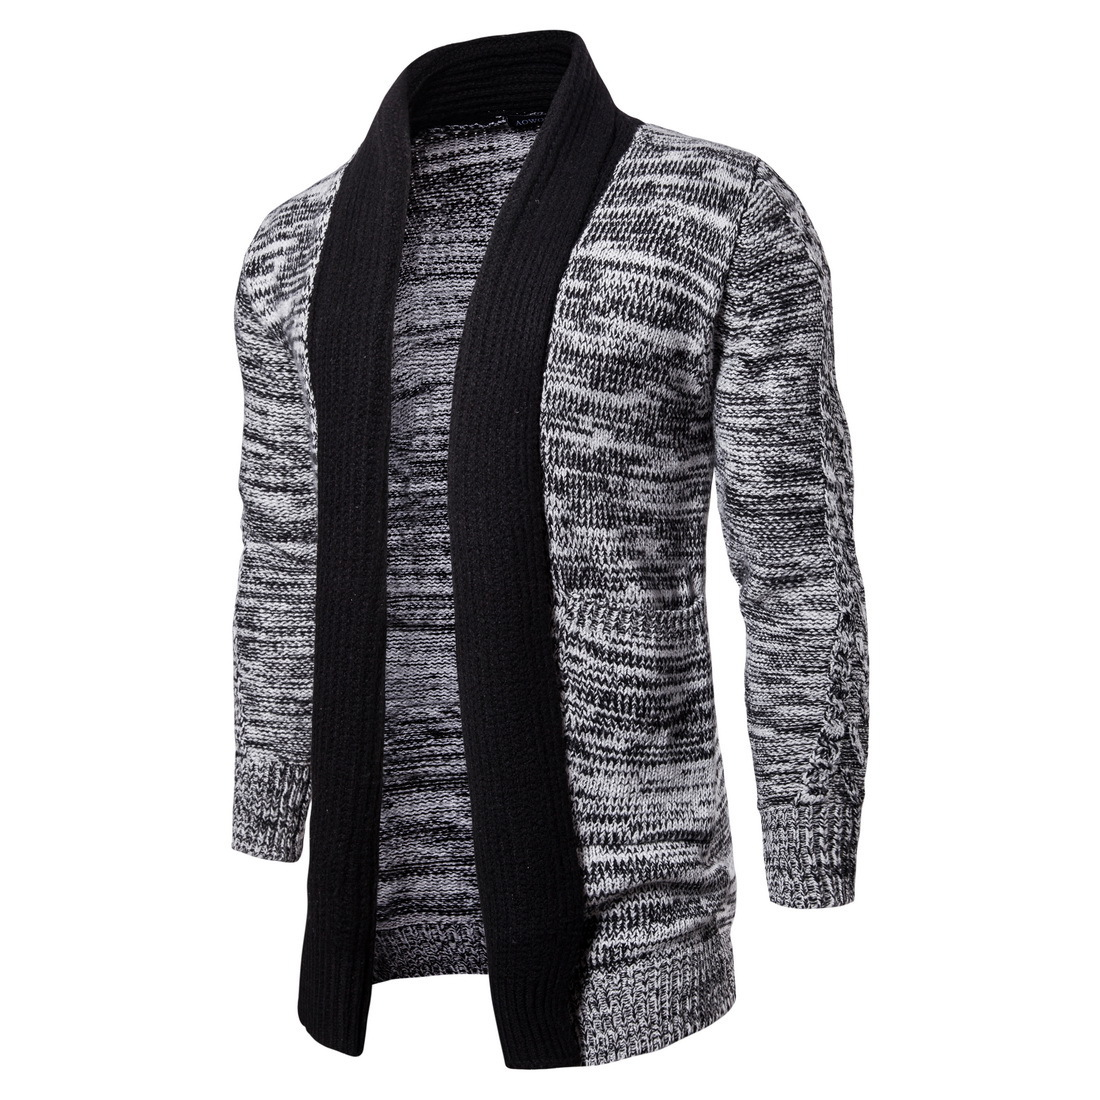 High Quality Fashion New Arrival Autumn And Winter Clothing Medium And Long Sknitted Sweater Jacket Cardigan Men Sweaters 2XL